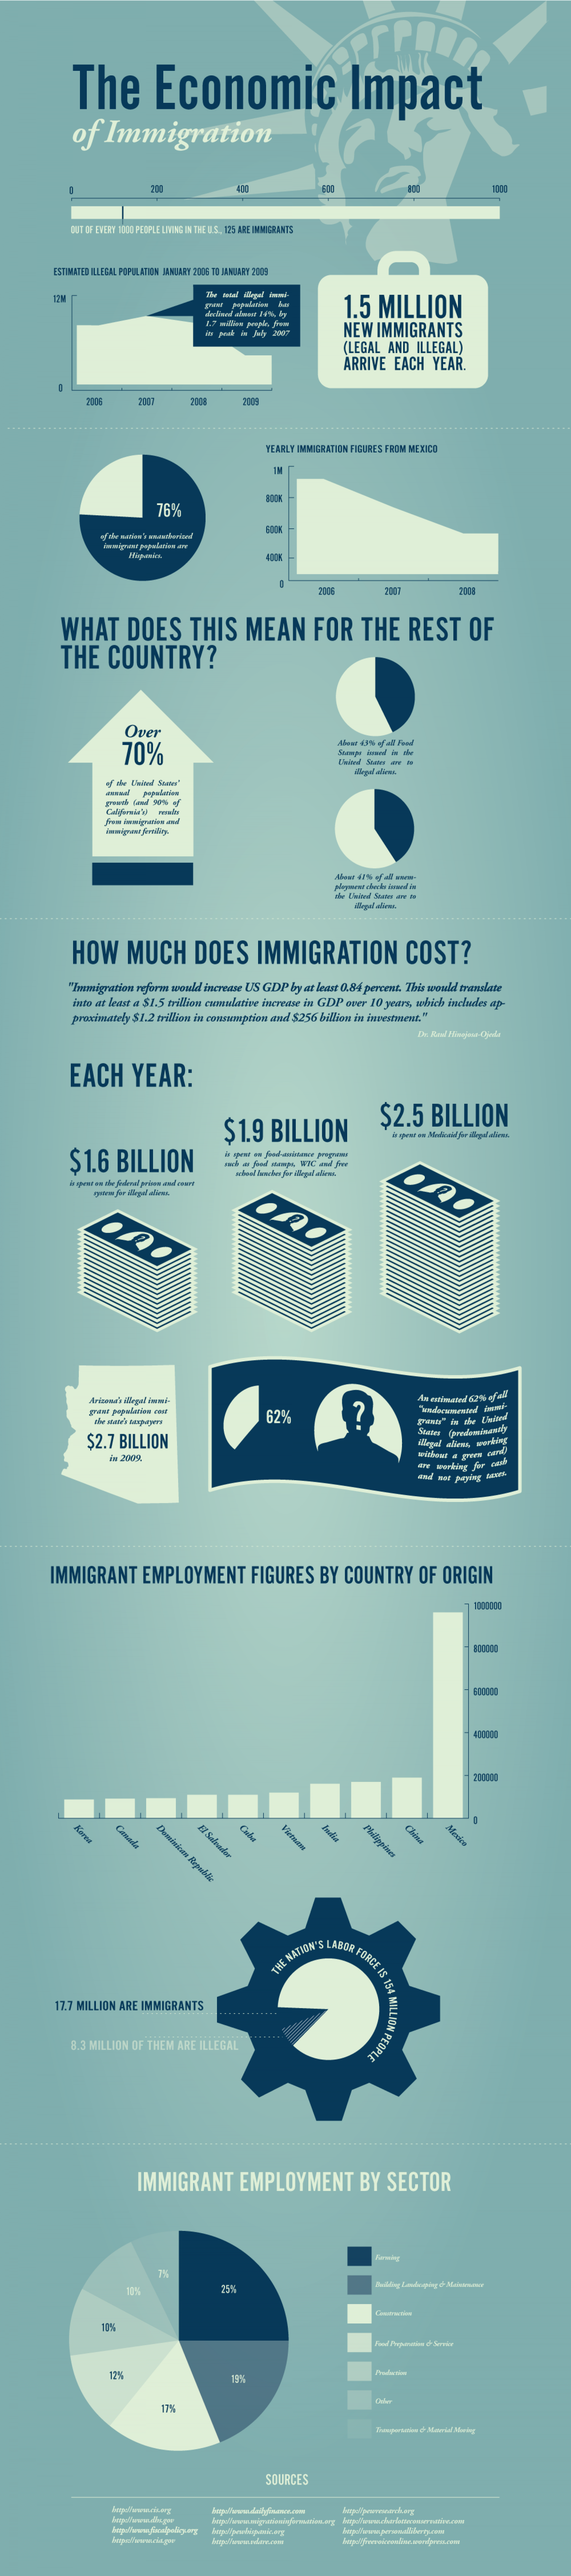 Economic Impact of Immigration Infographic